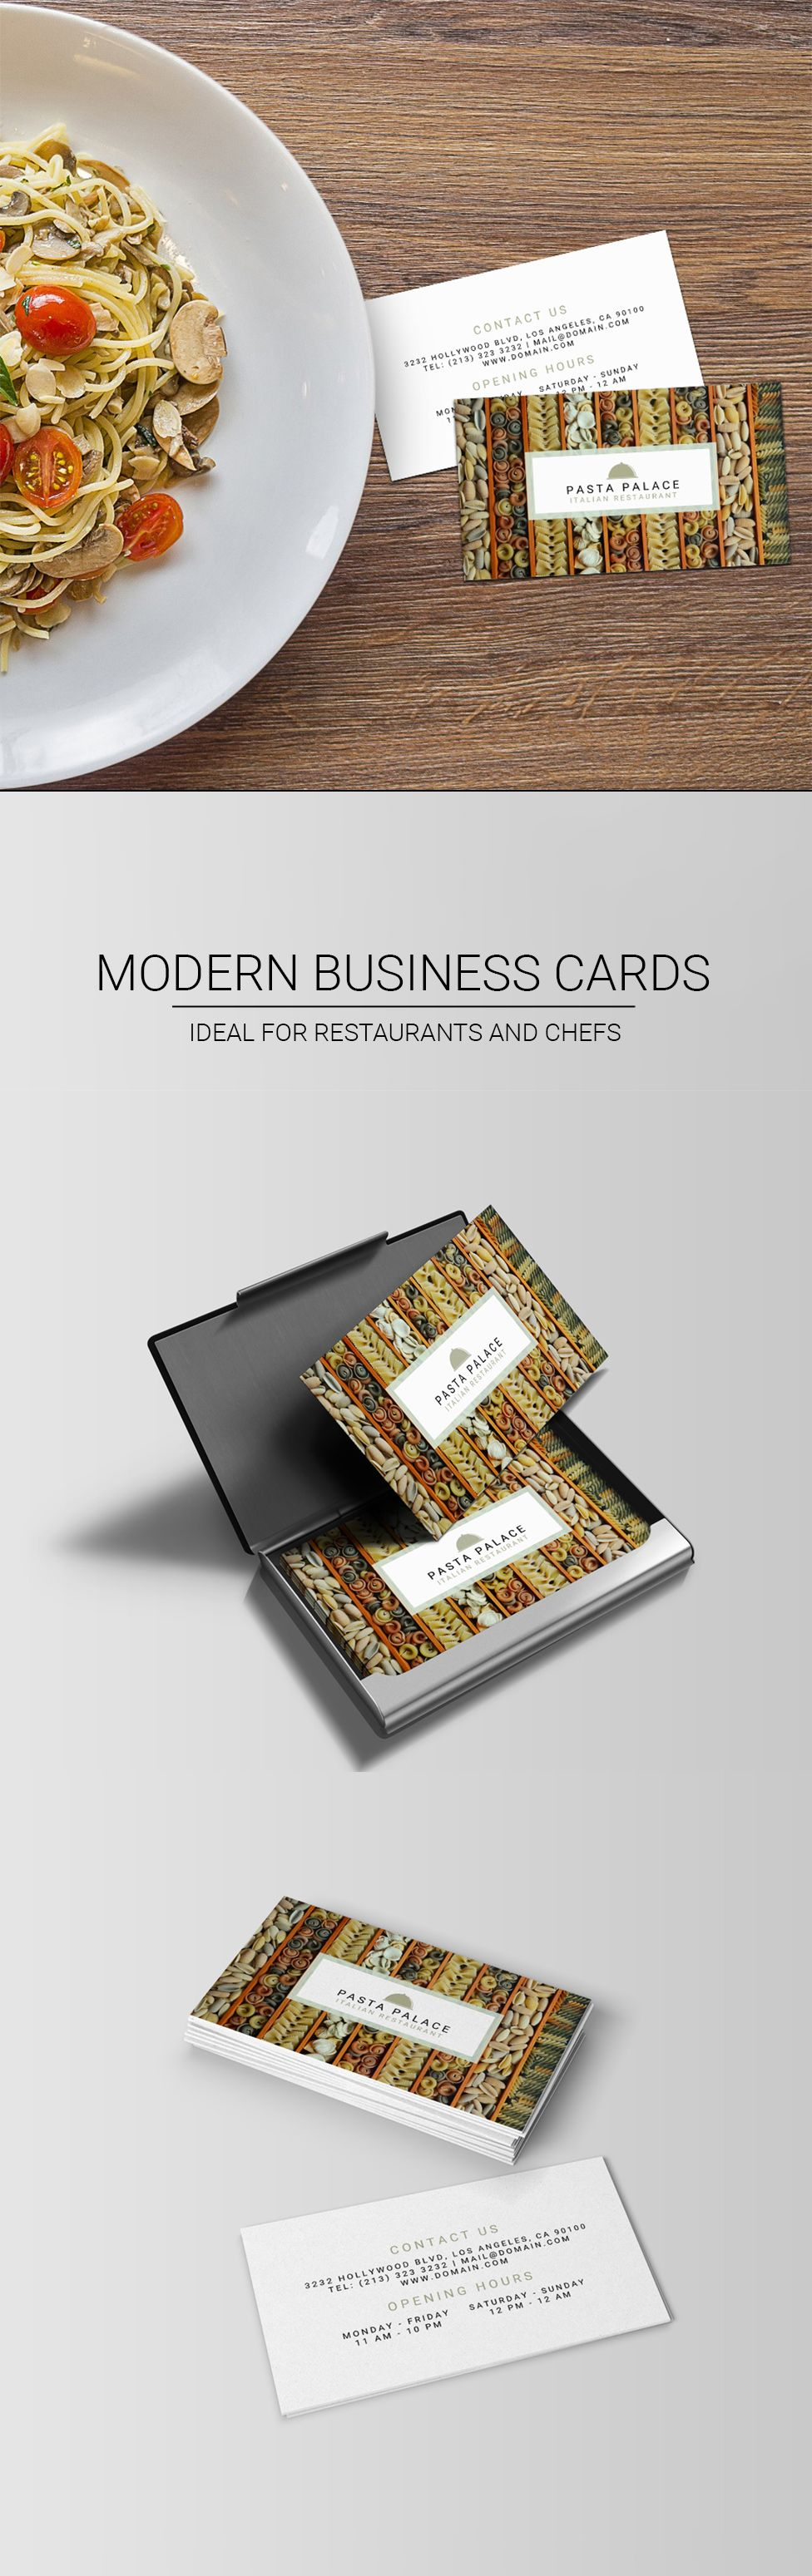 Modern business card for restaurants and personal chefs Would